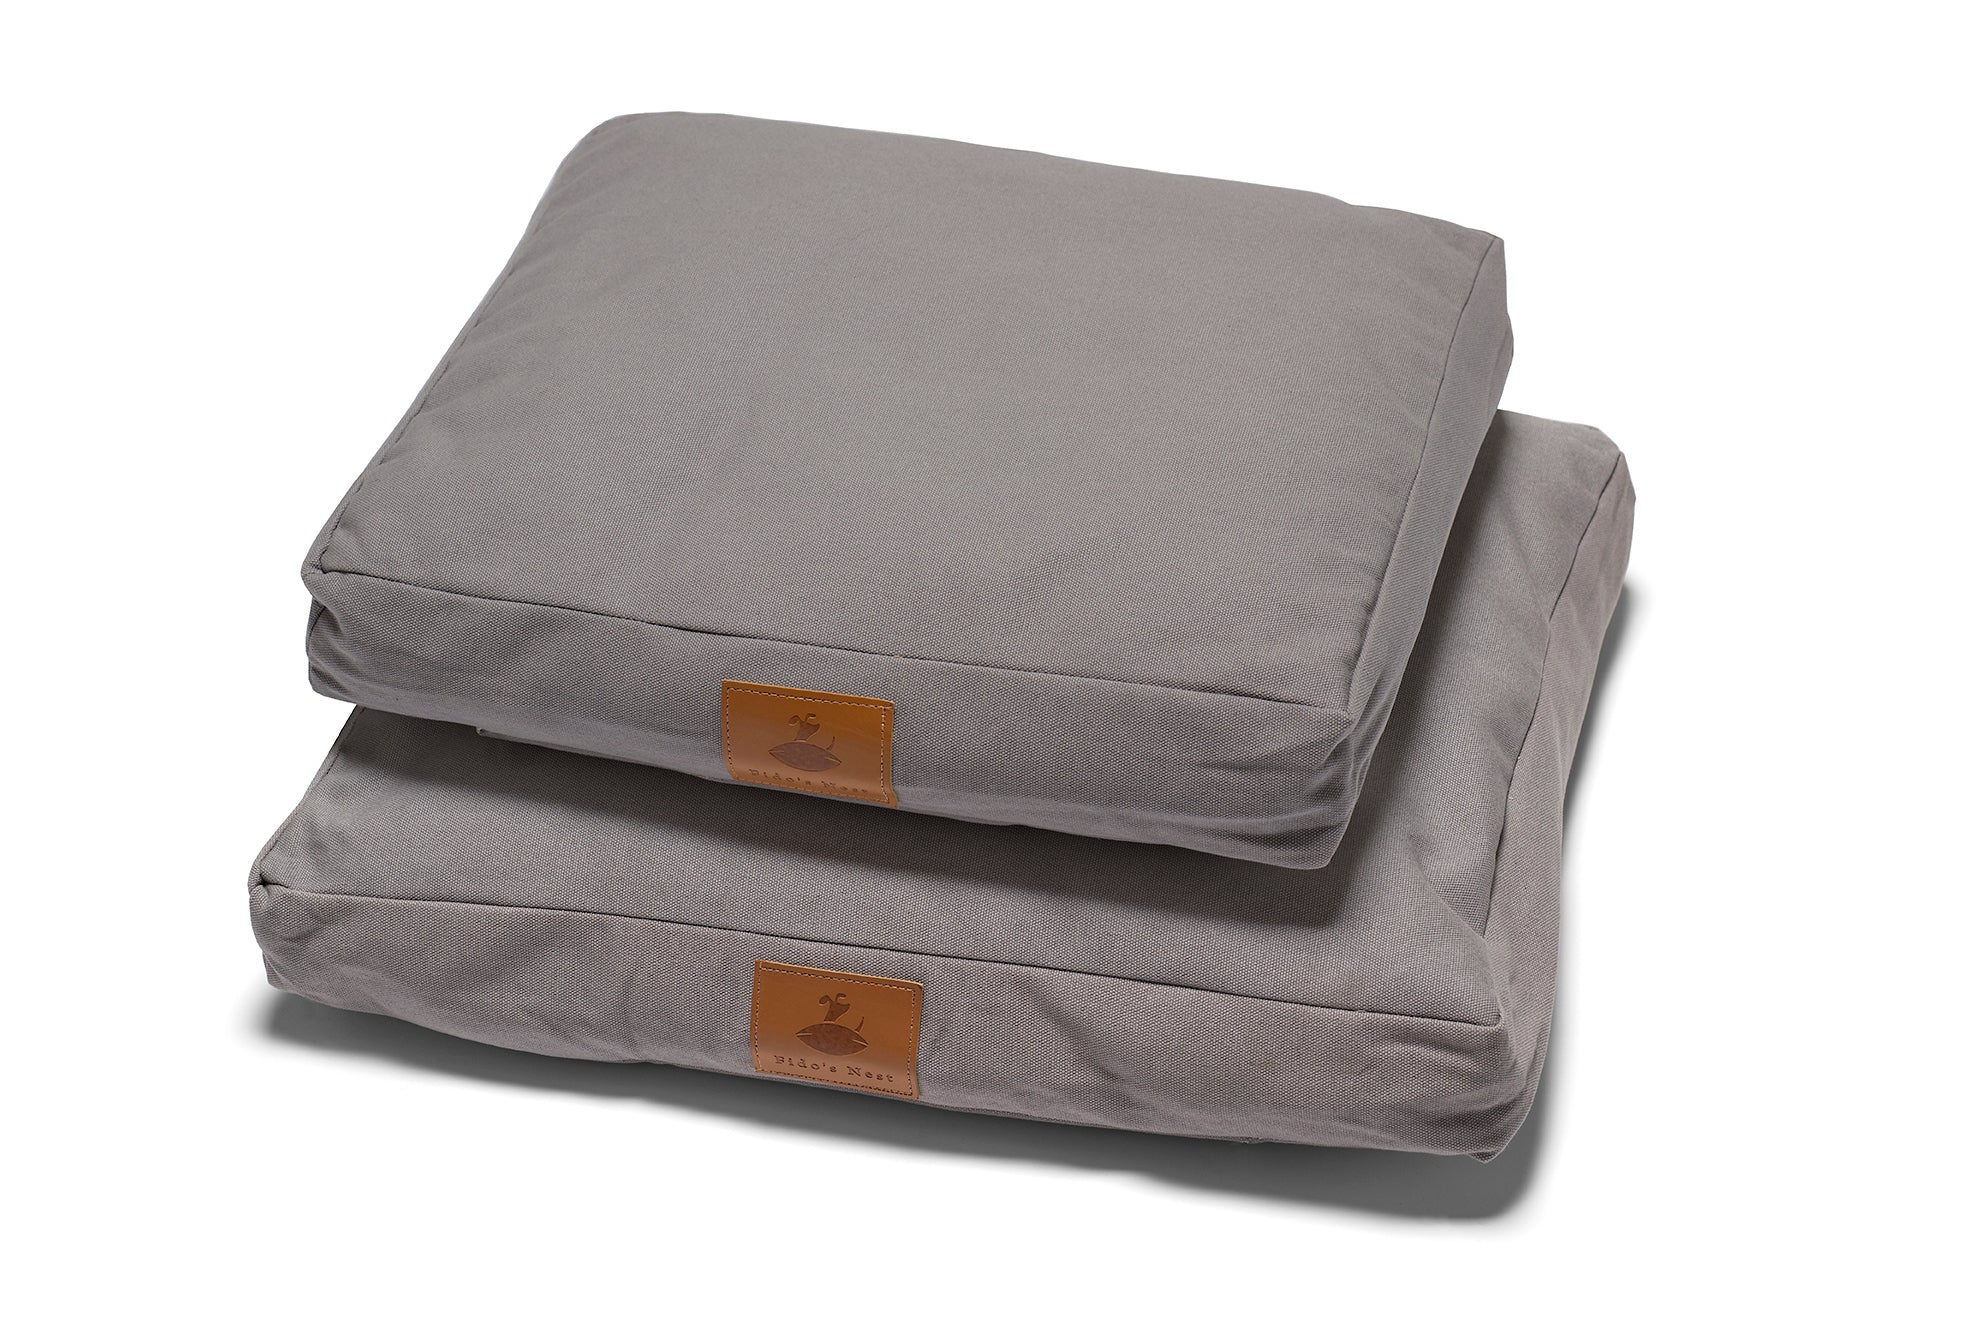 Lupo's Nest | Luxury modern pillow dog bed. Anti-allergy, durable and machine washable. Choice of wool or hollow-fibre filling. In Cool Grey.